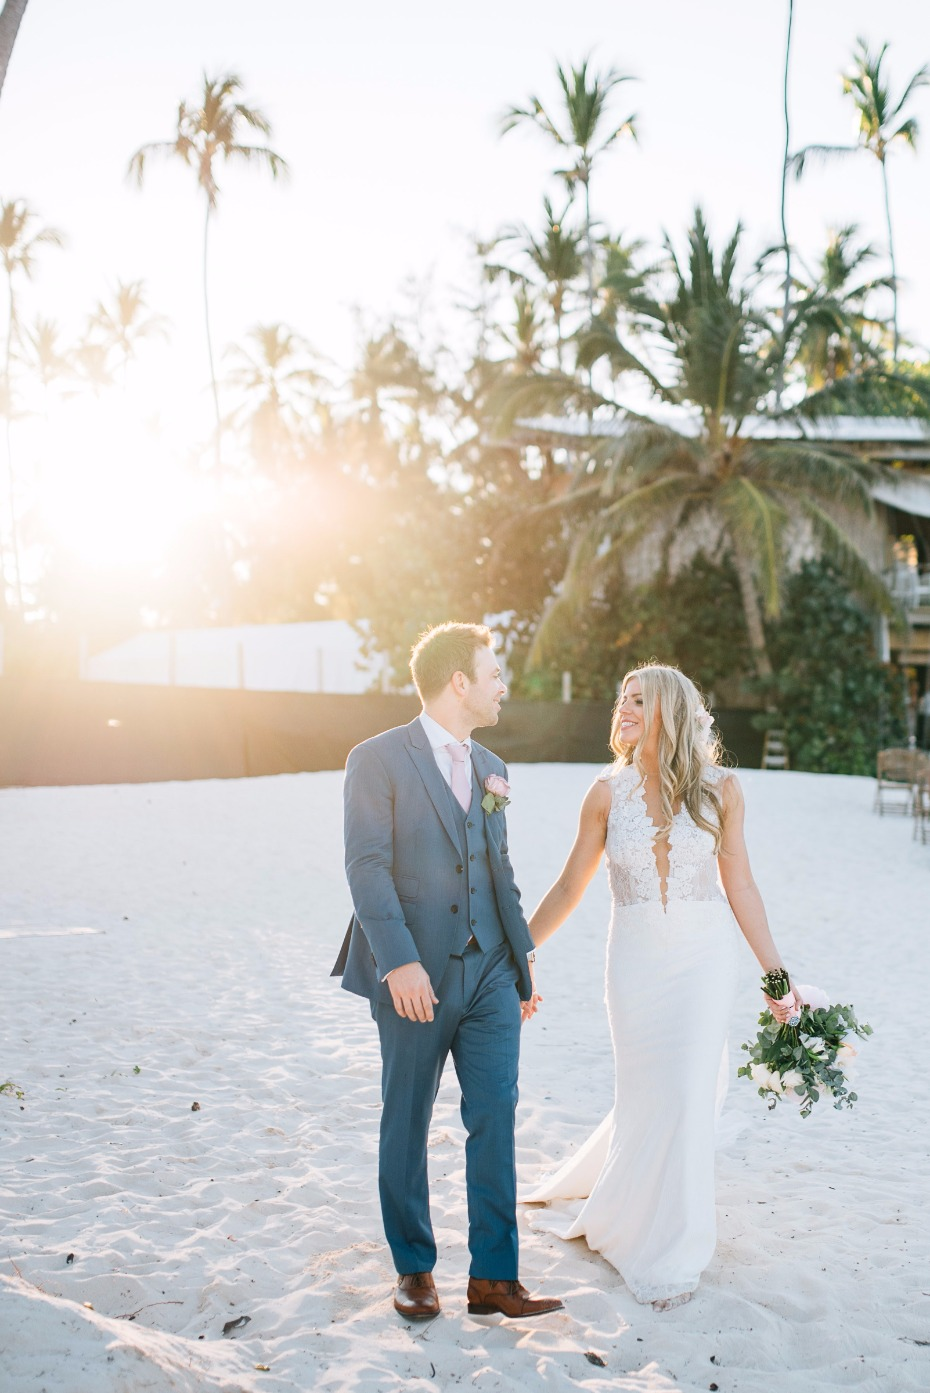 the perfect beach wedding in mexico